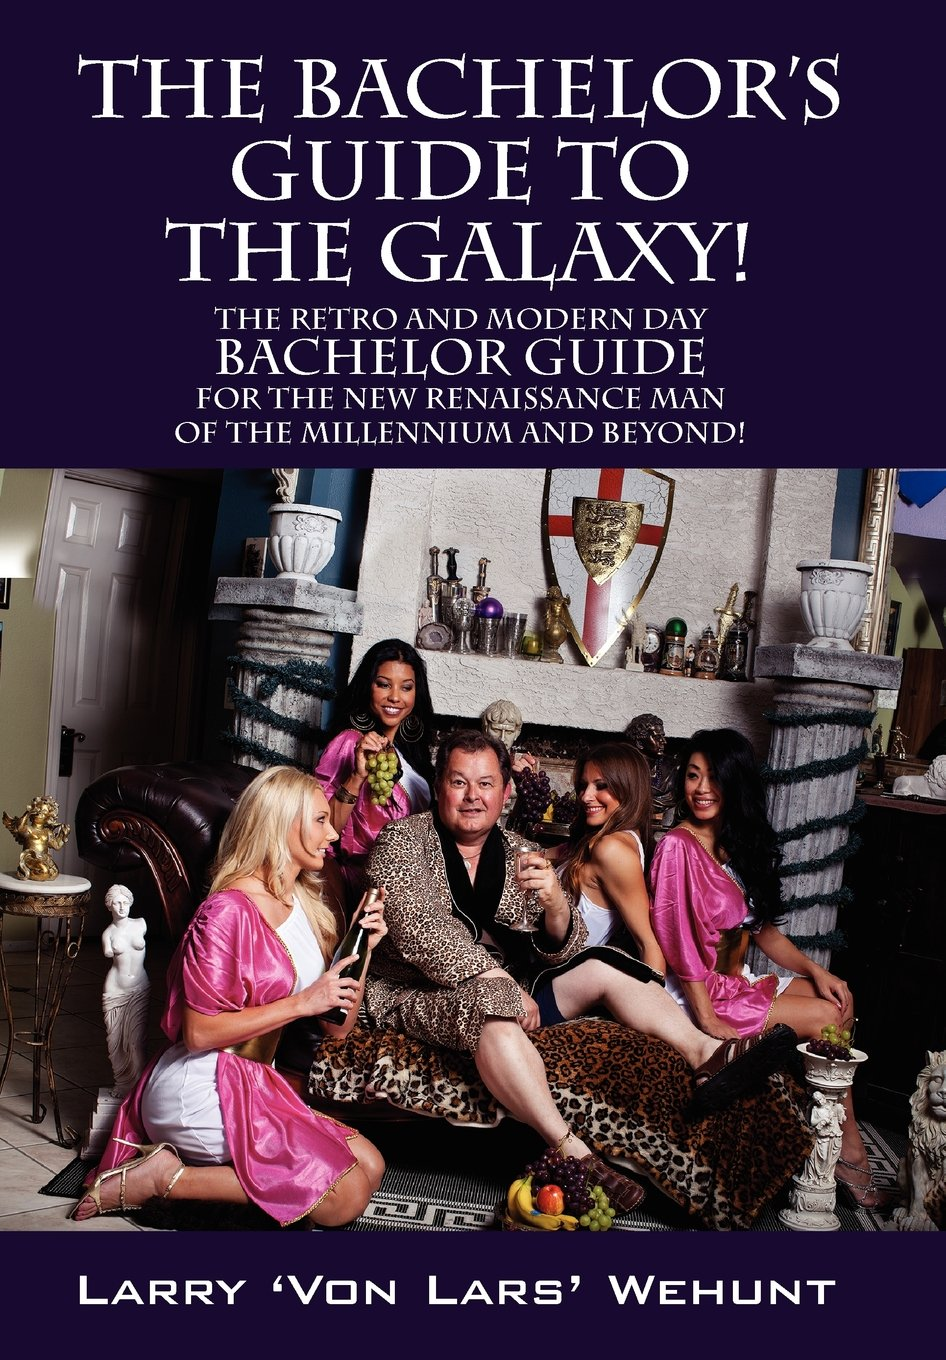 Download The Bachelor's Guide To The Galaxy!: The Retro And Modern Day Bachelor Guide For The New Renaissance Man Of The Millennium And Beyond! pdf